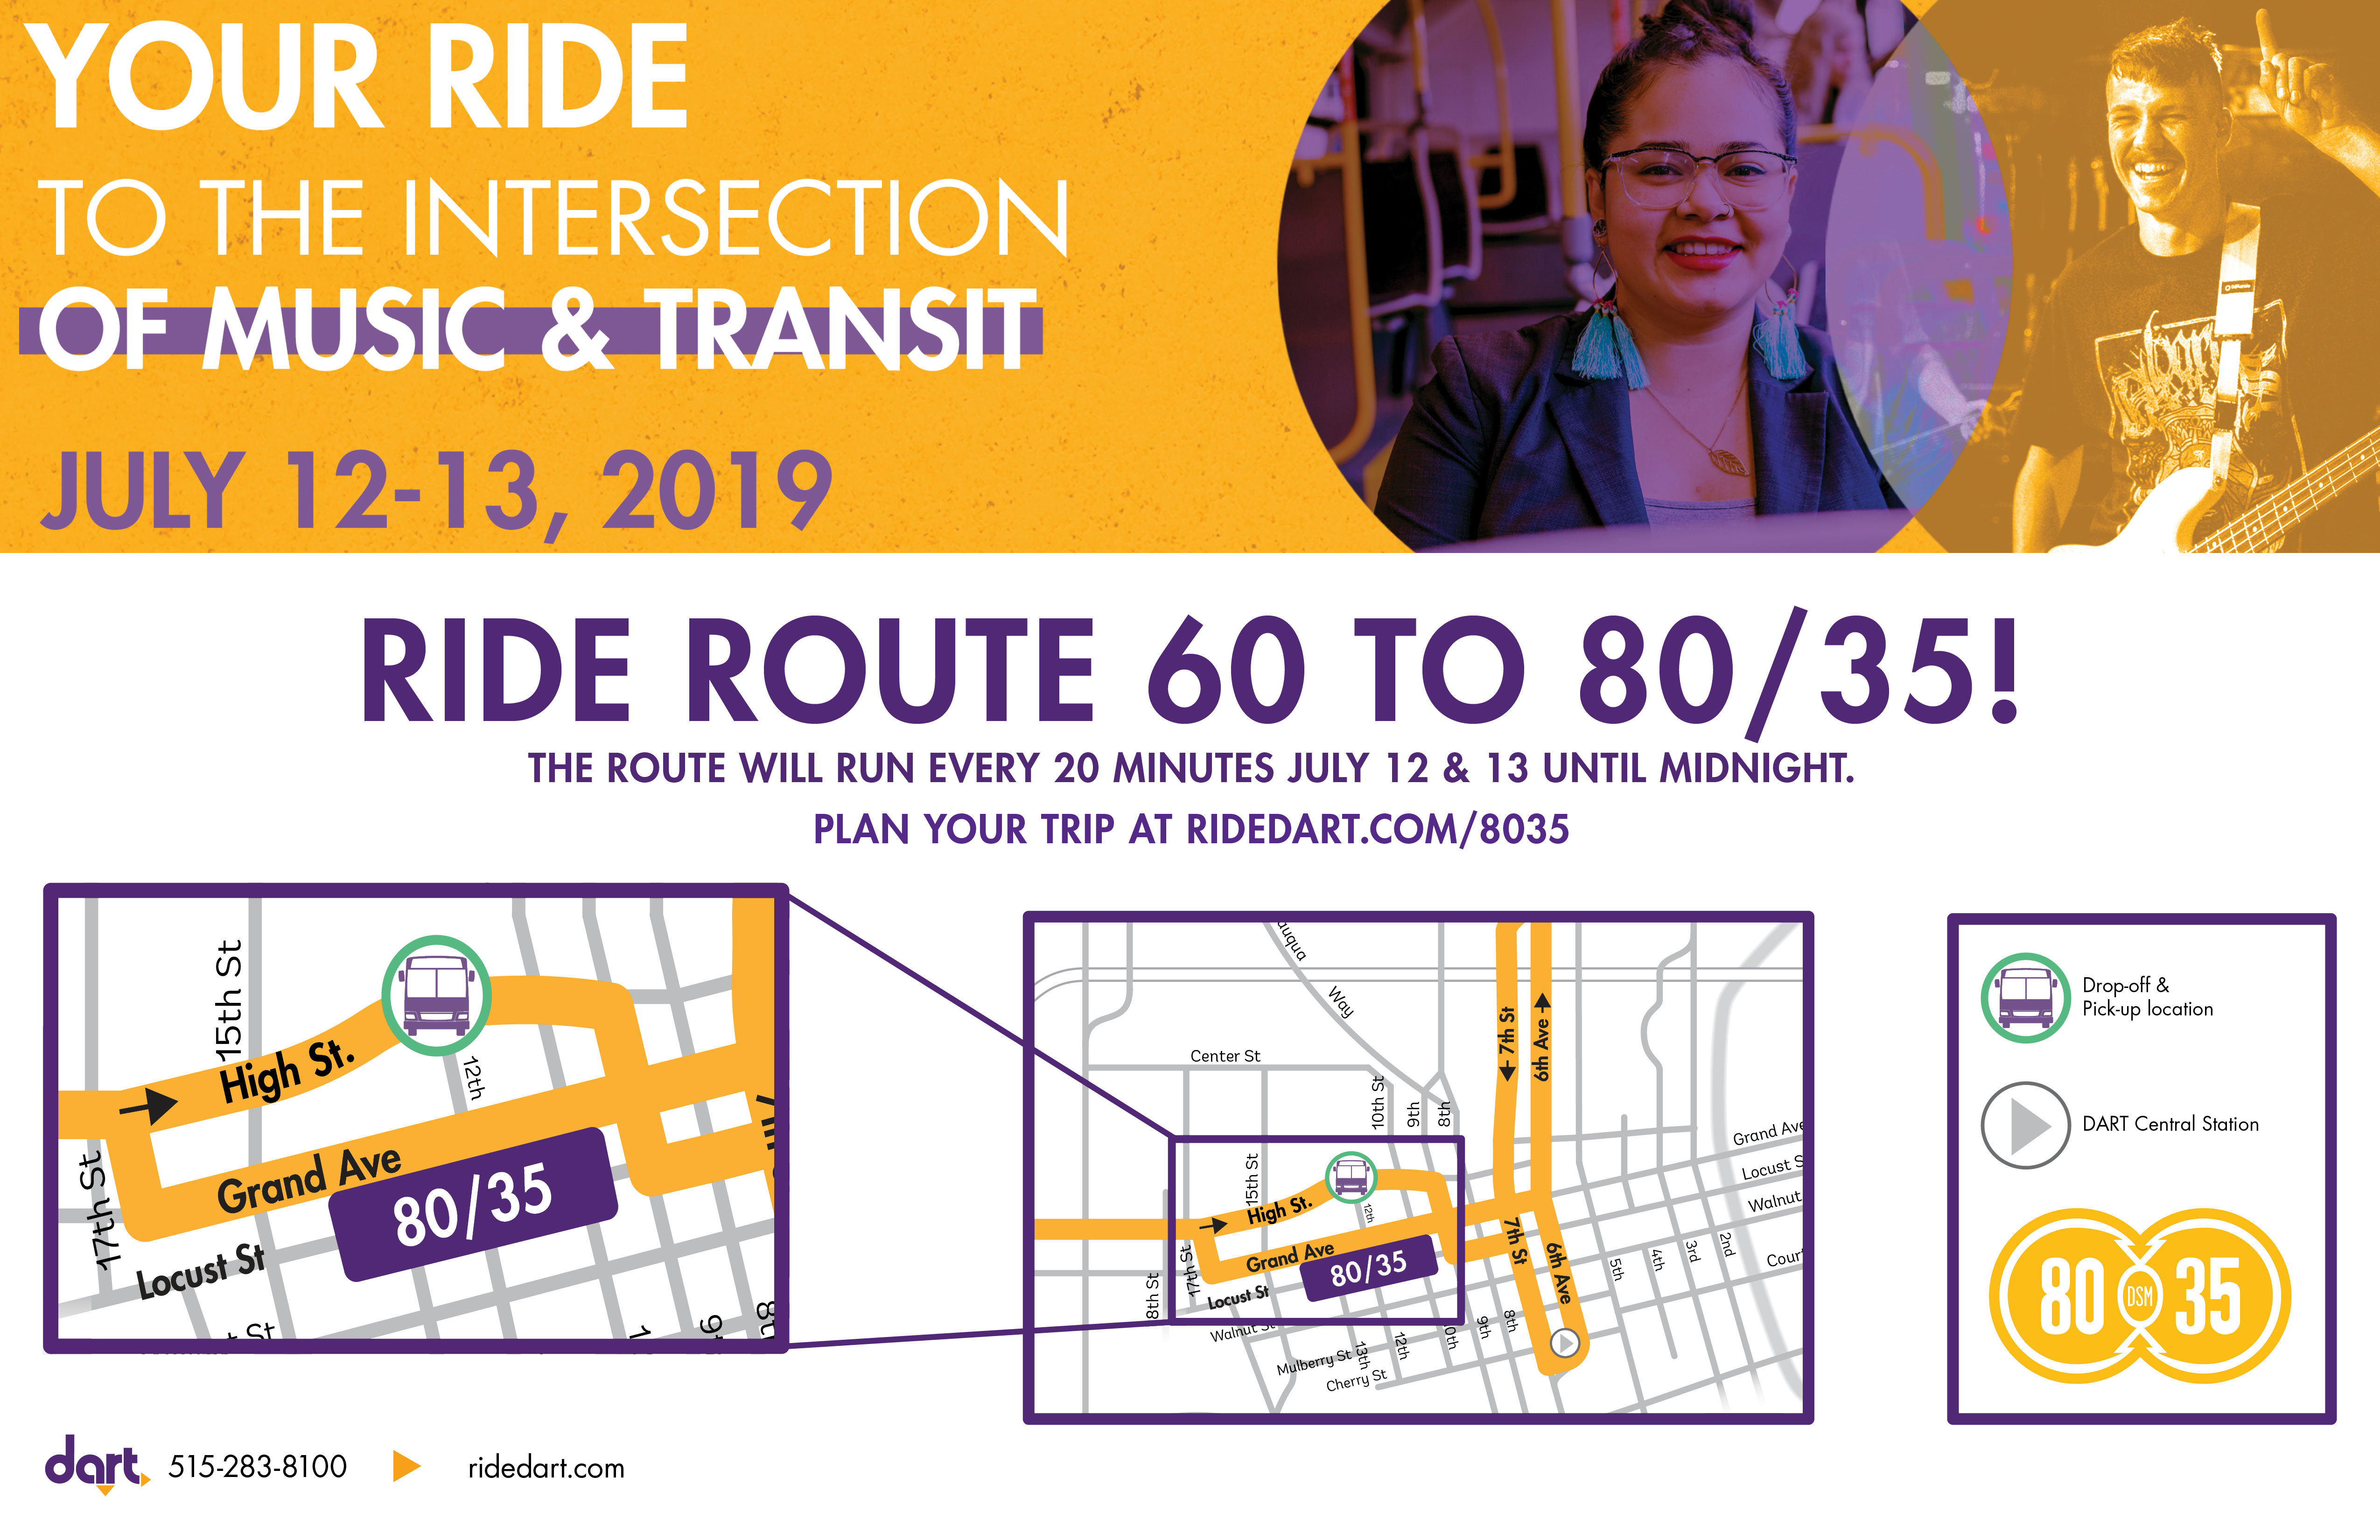 80/35 music festival DART bus route map